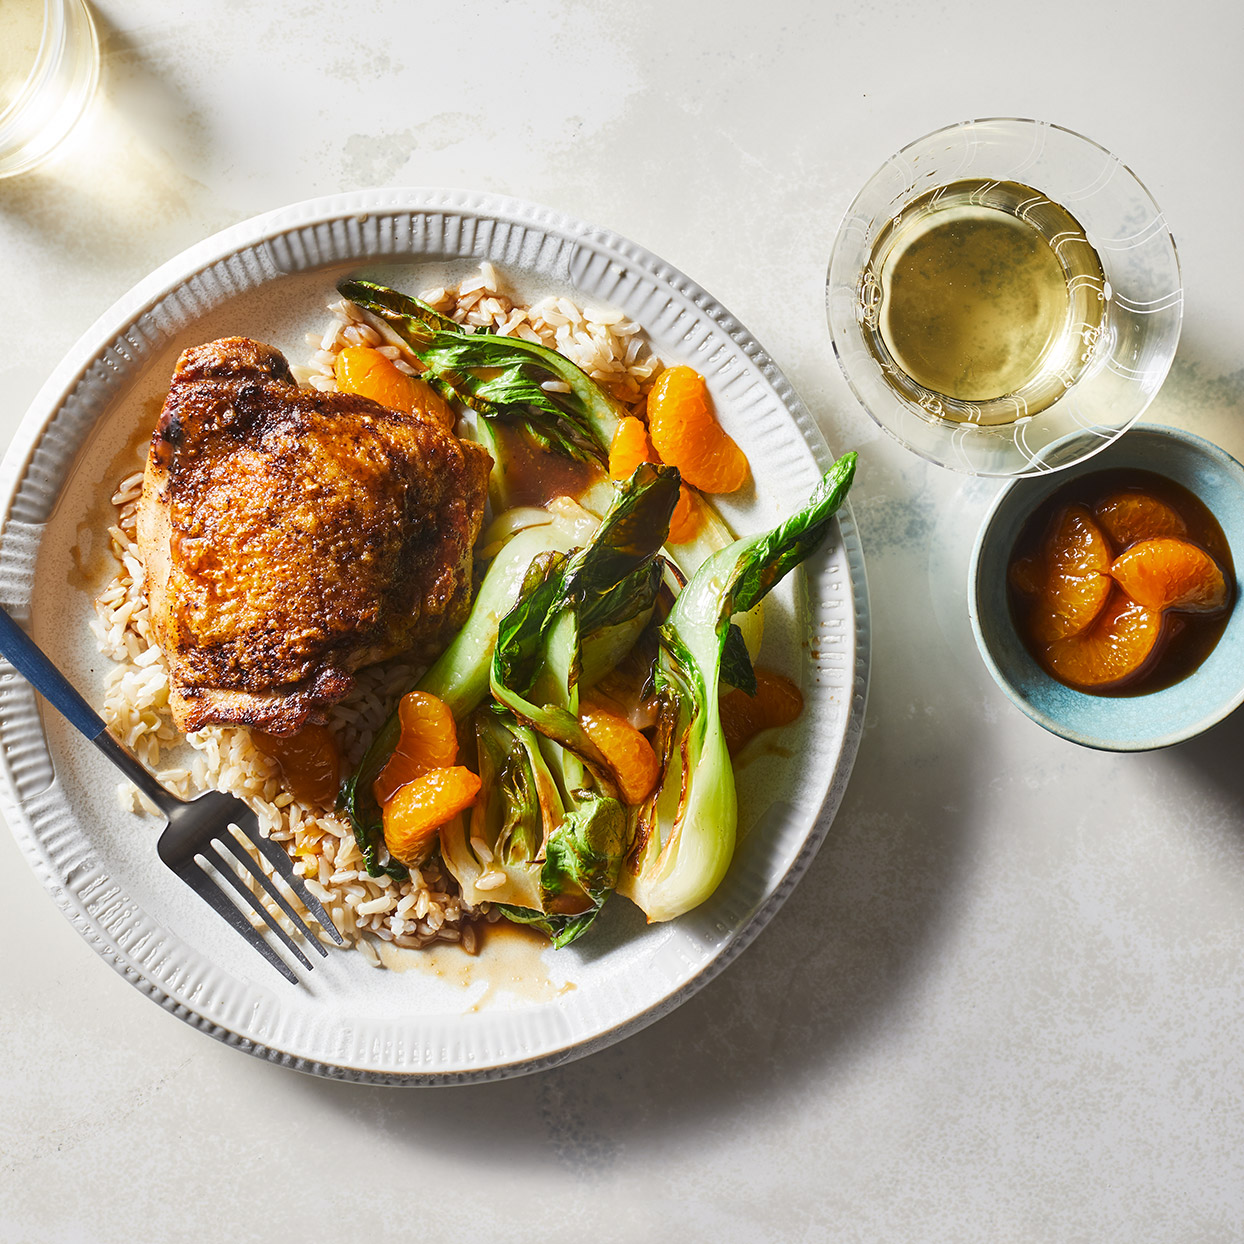 Searing the chicken before roasting at high heat ensures super-crispy skin. Combine that with mandarin oranges and you've got a healthy orange-chicken dish reminiscent of the favorite fried one at the mall food court--but without the fryer. Source: EatingWell Magazine, March 2020